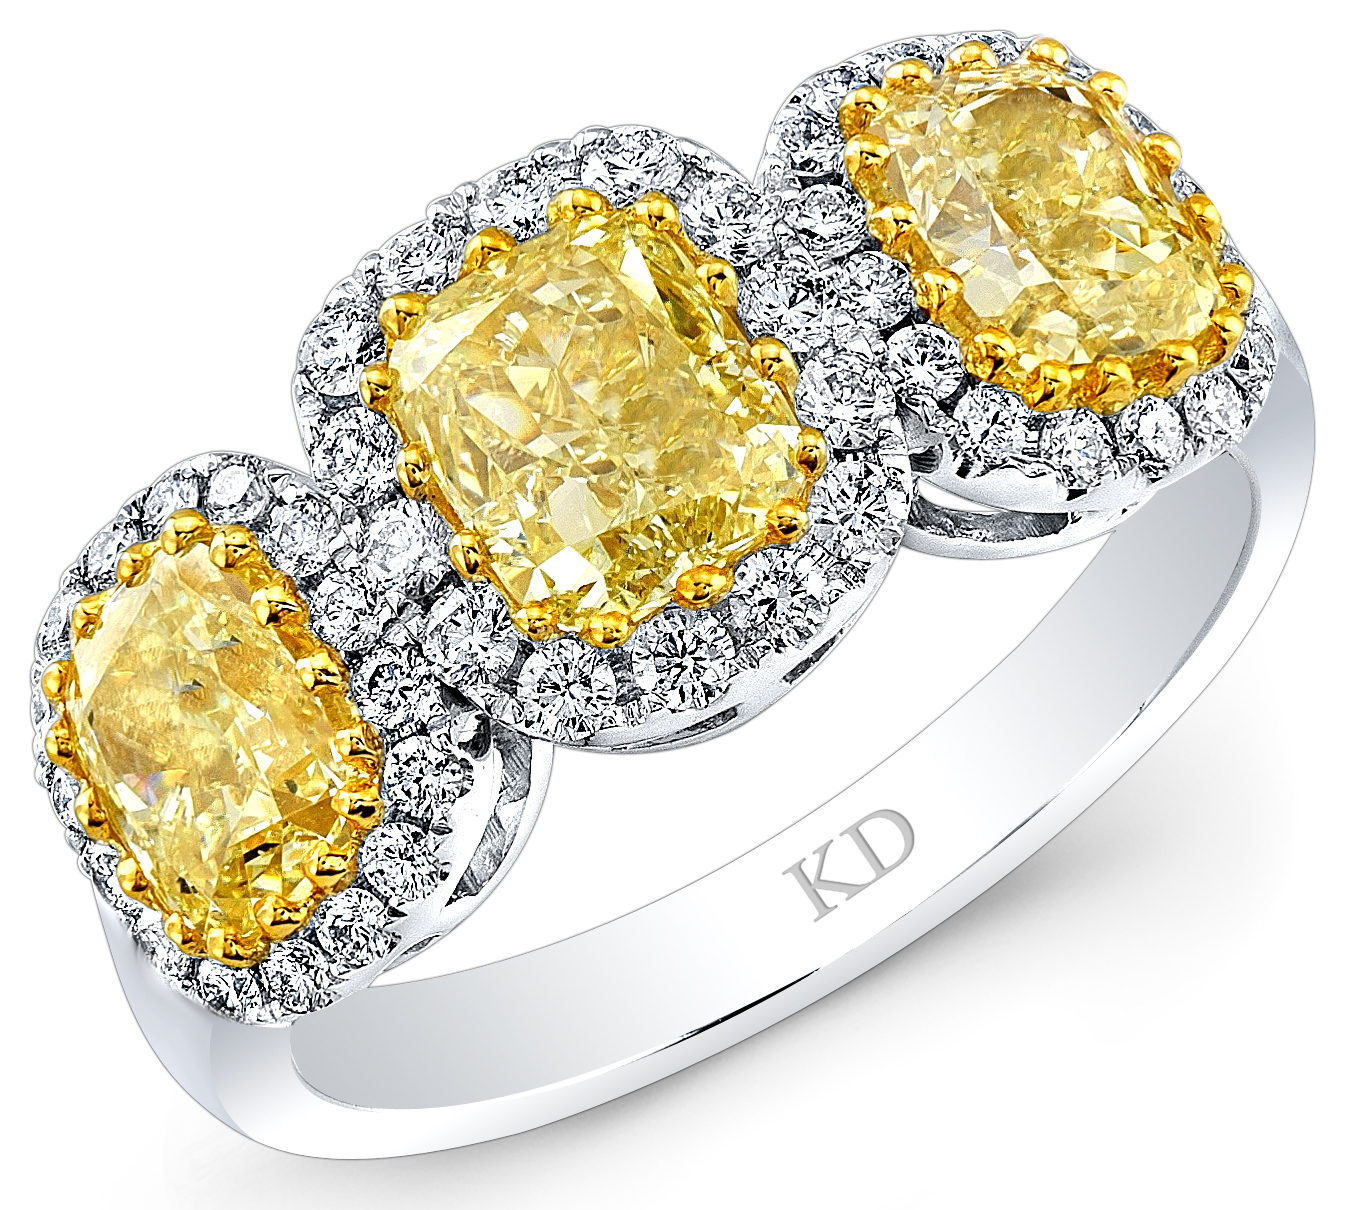 Kattan three-stone yellow diamond ring | JCK On Your Market